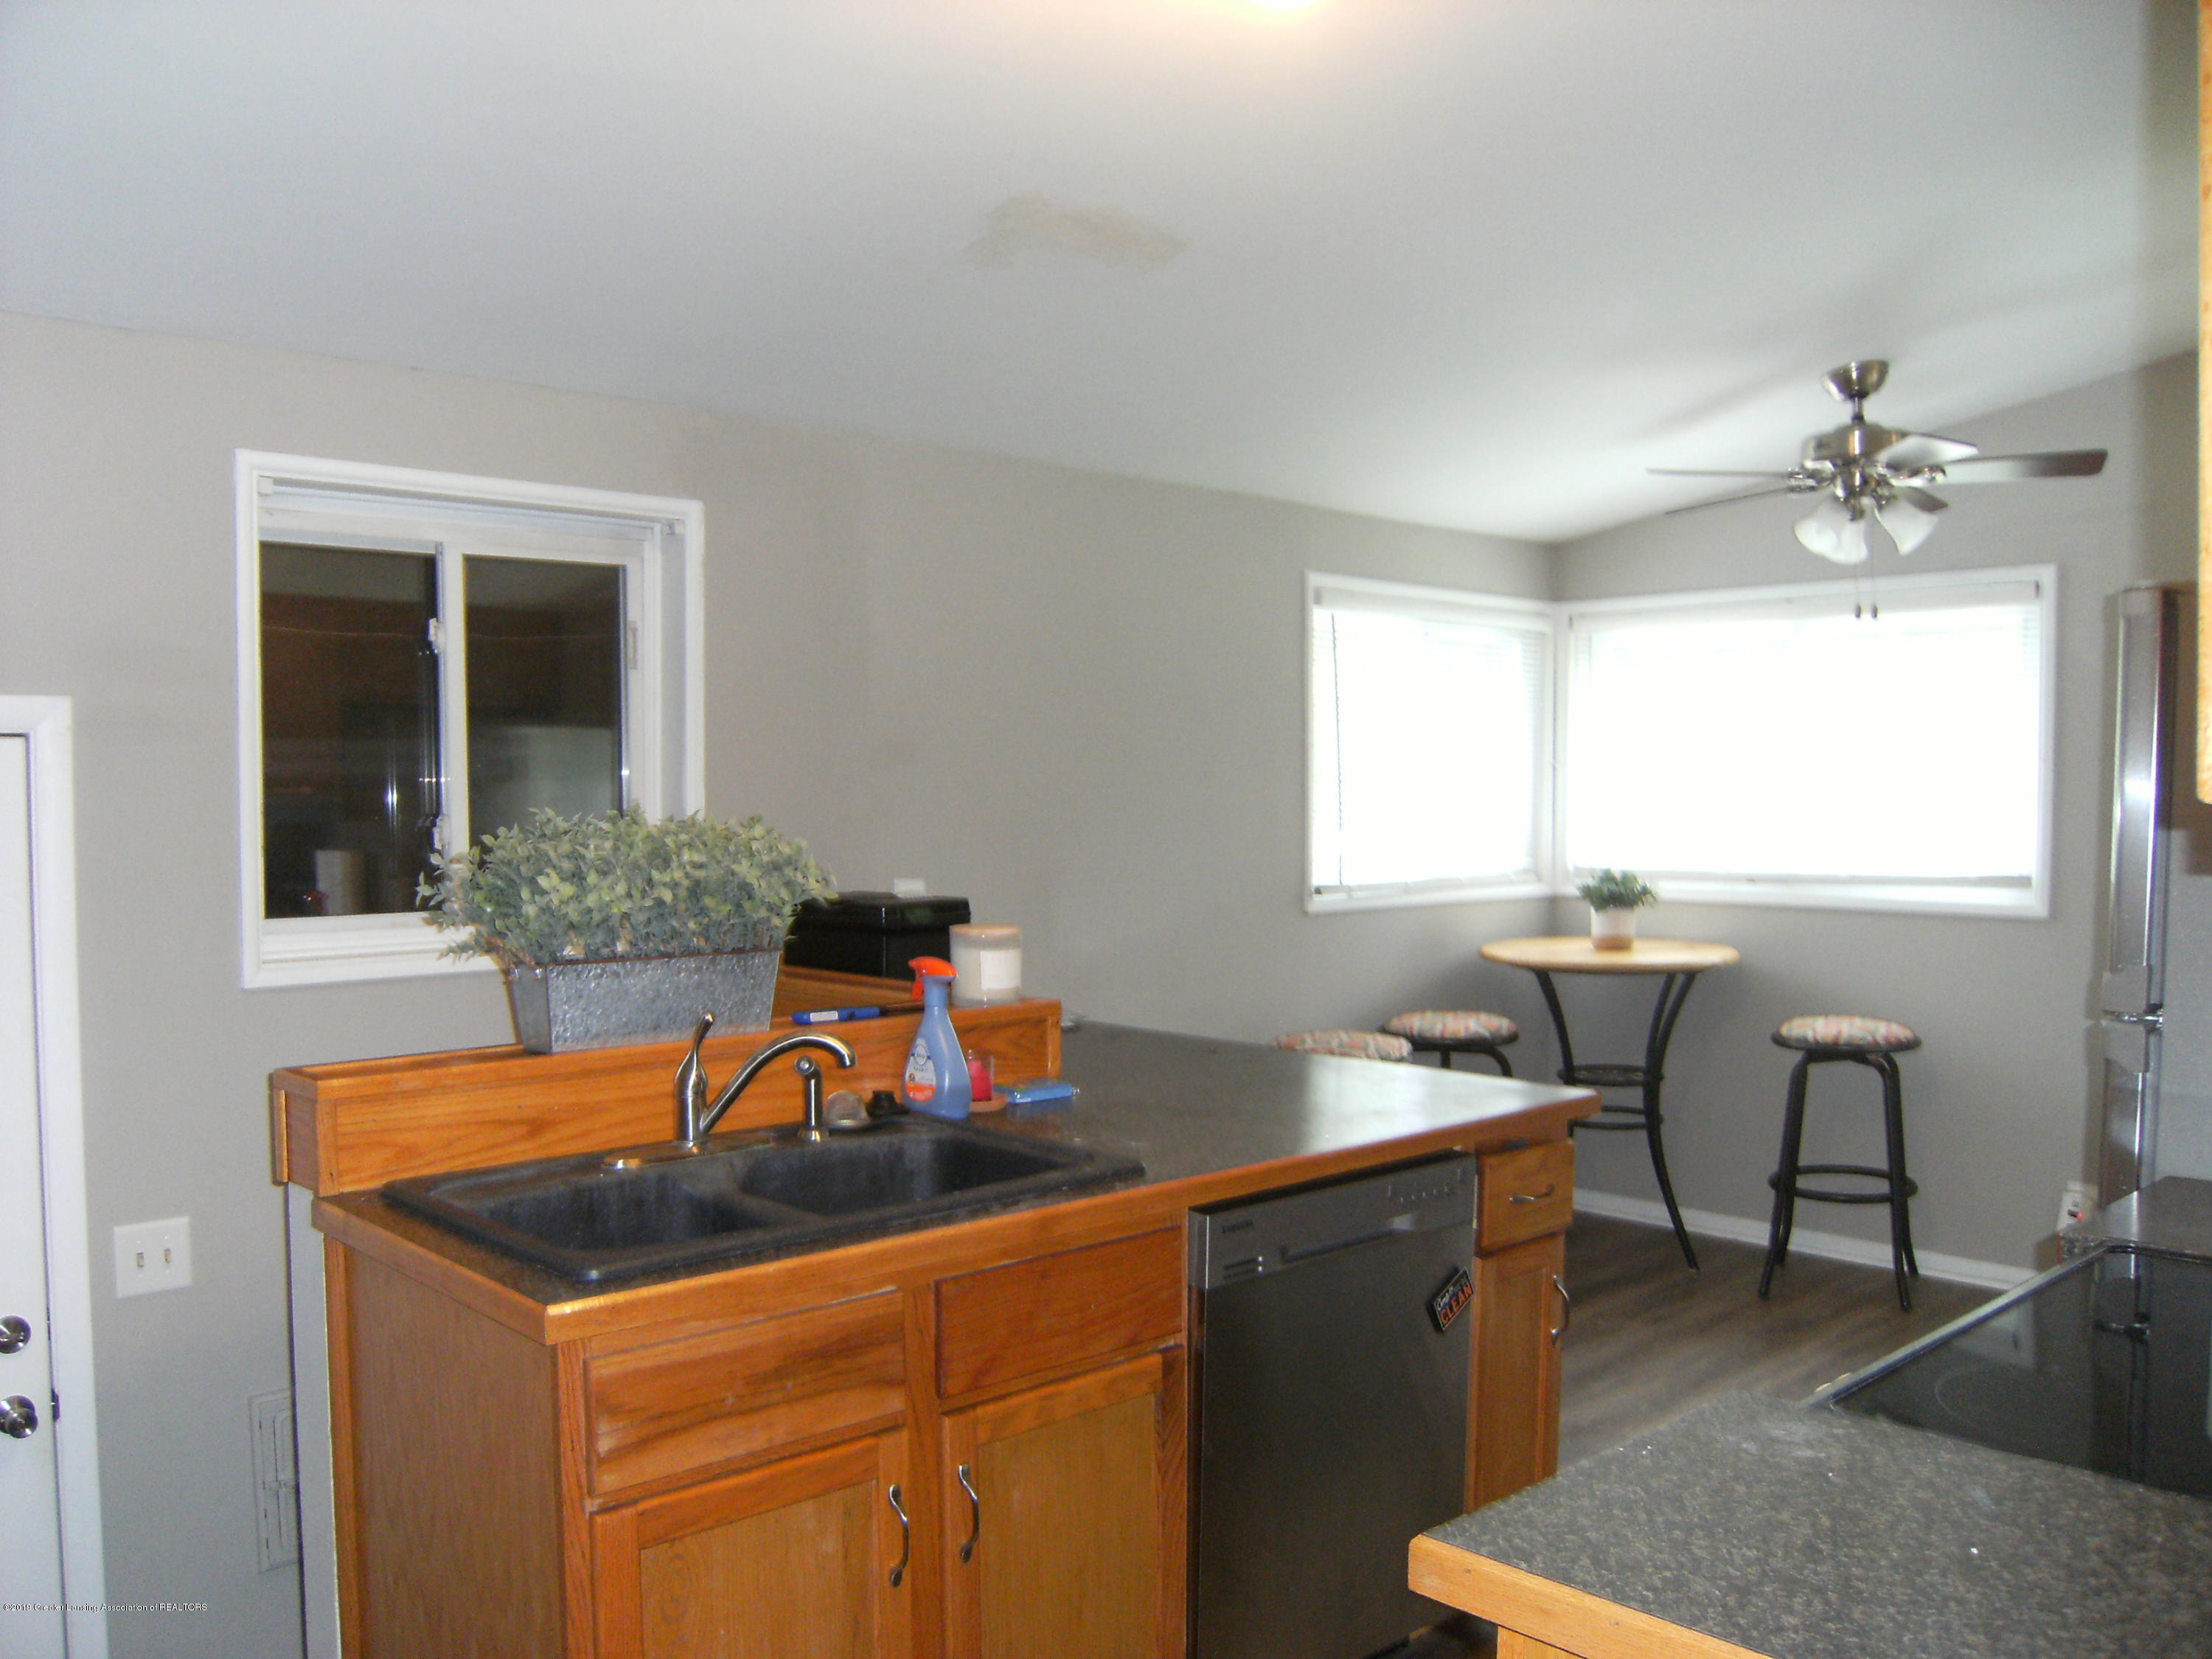 1315 N Foster Ave - Kitchen and dining room - 6